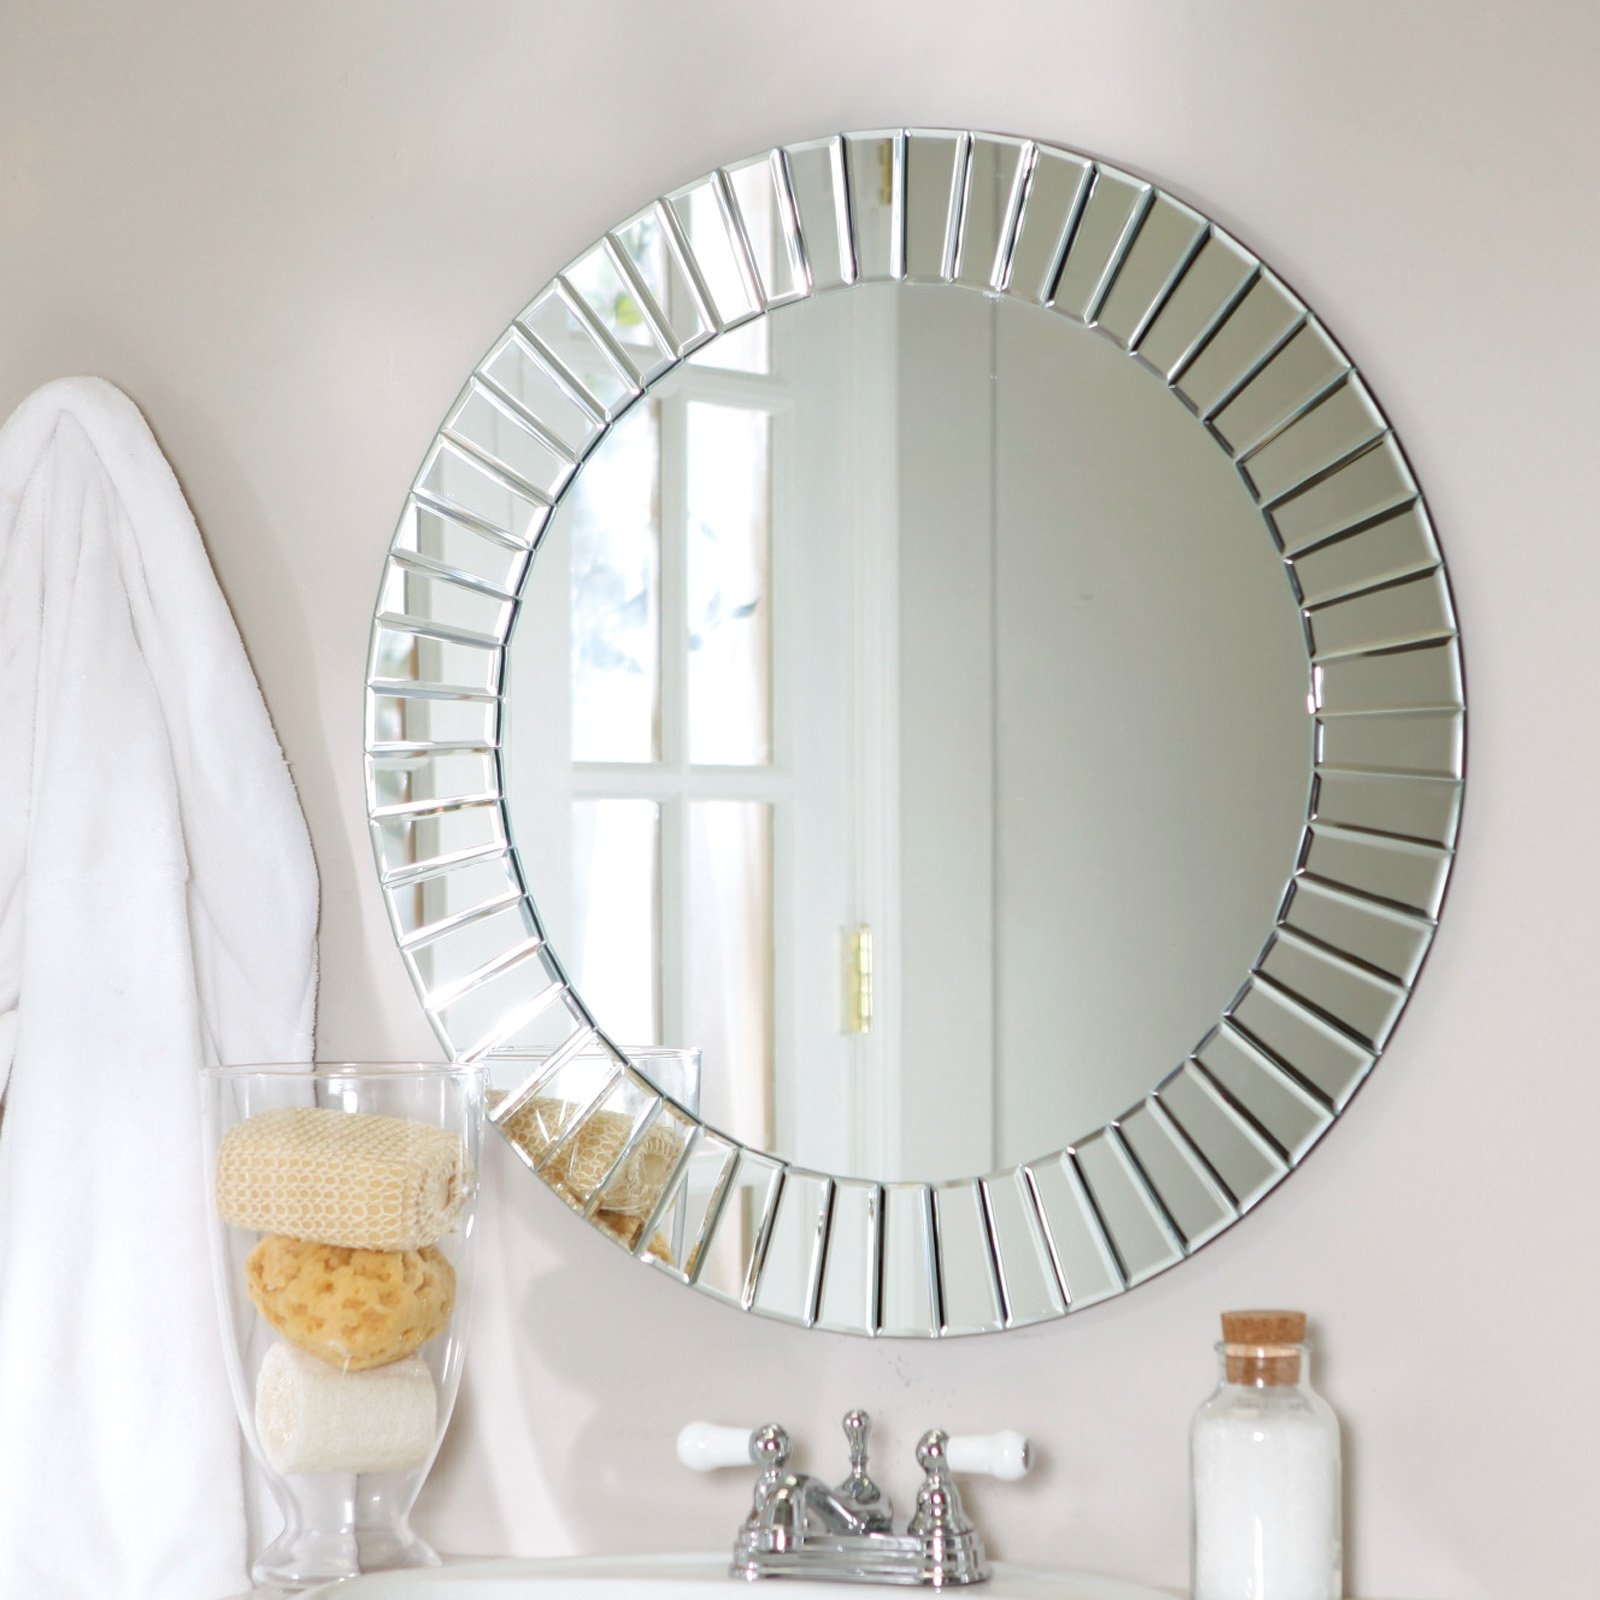 Help I Have Got Spots On My Mirror My Decorative With Regard To Mirror Circles For Walls (View 5 of 15)